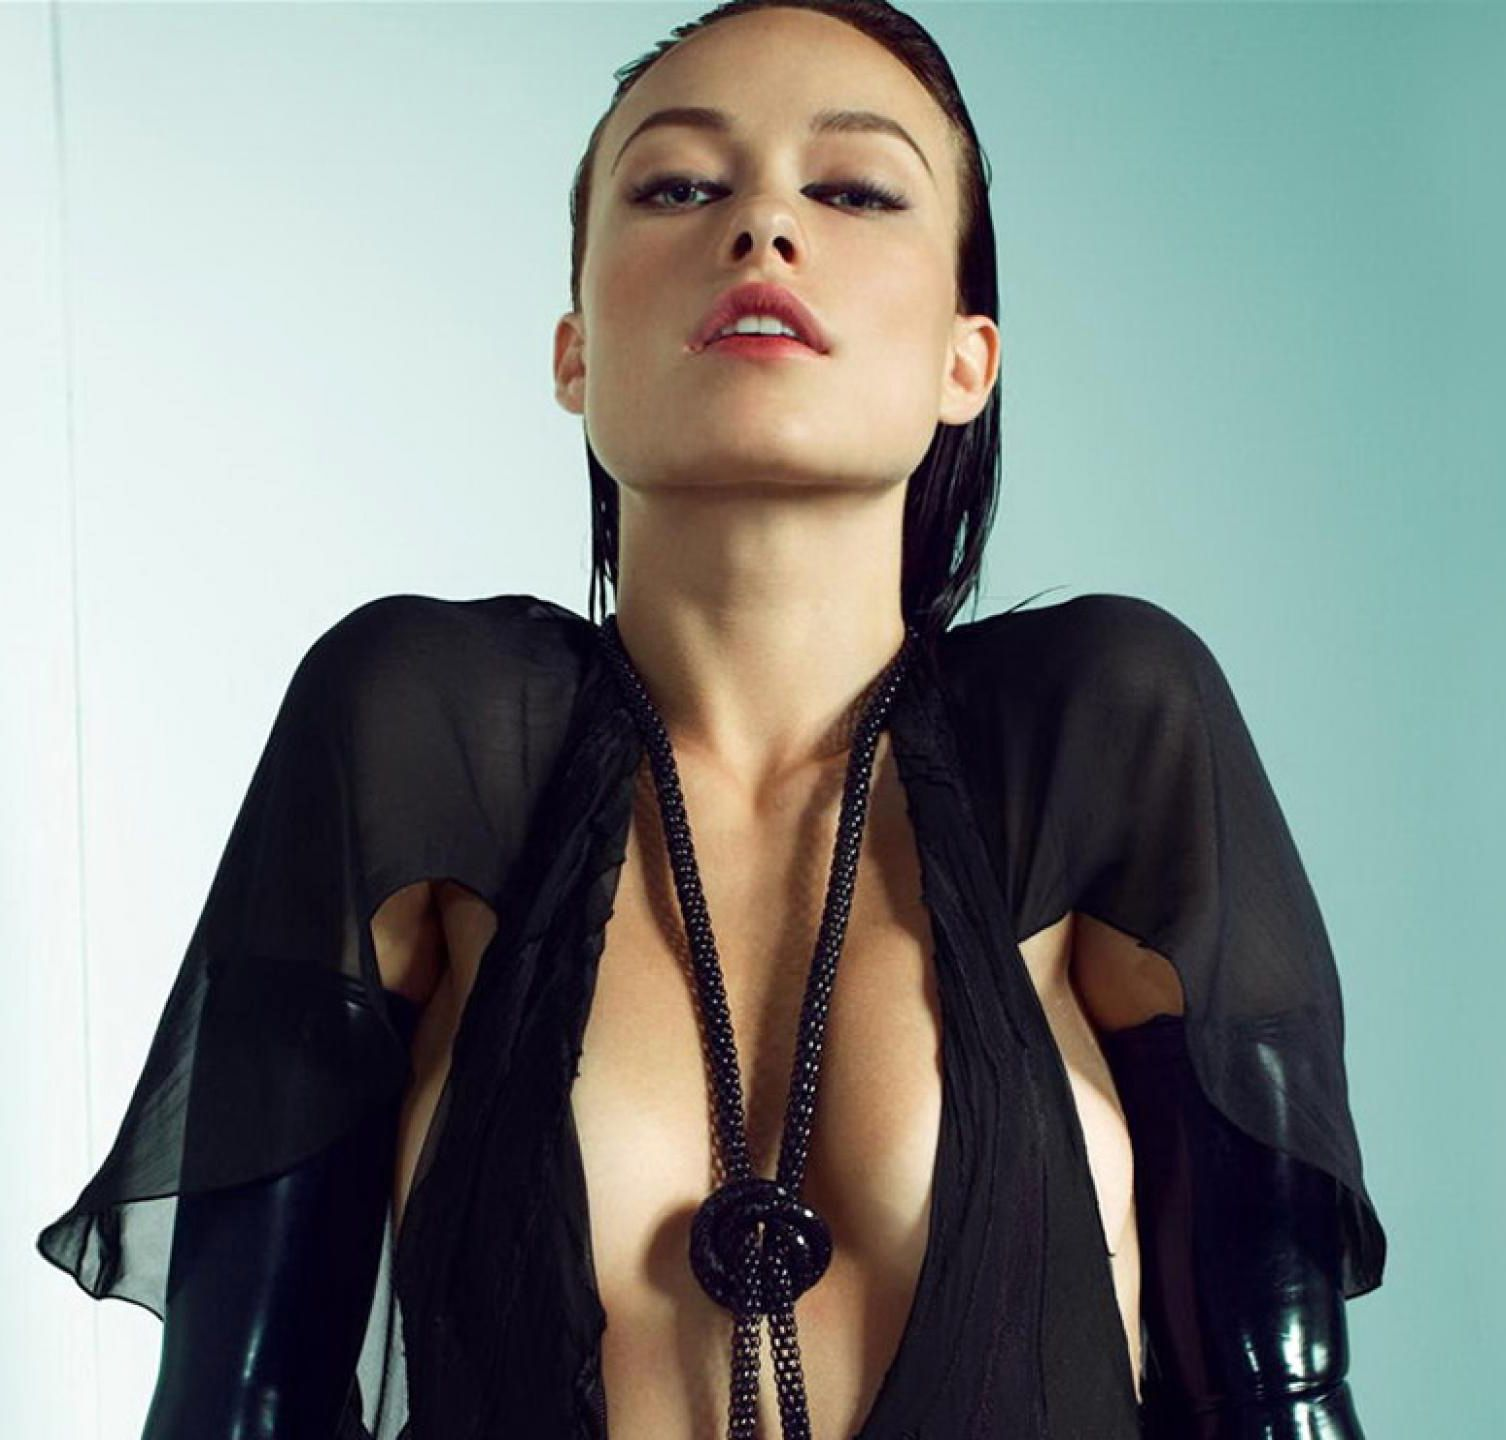 Wicked Wednesday Woman - Olivia Wilde